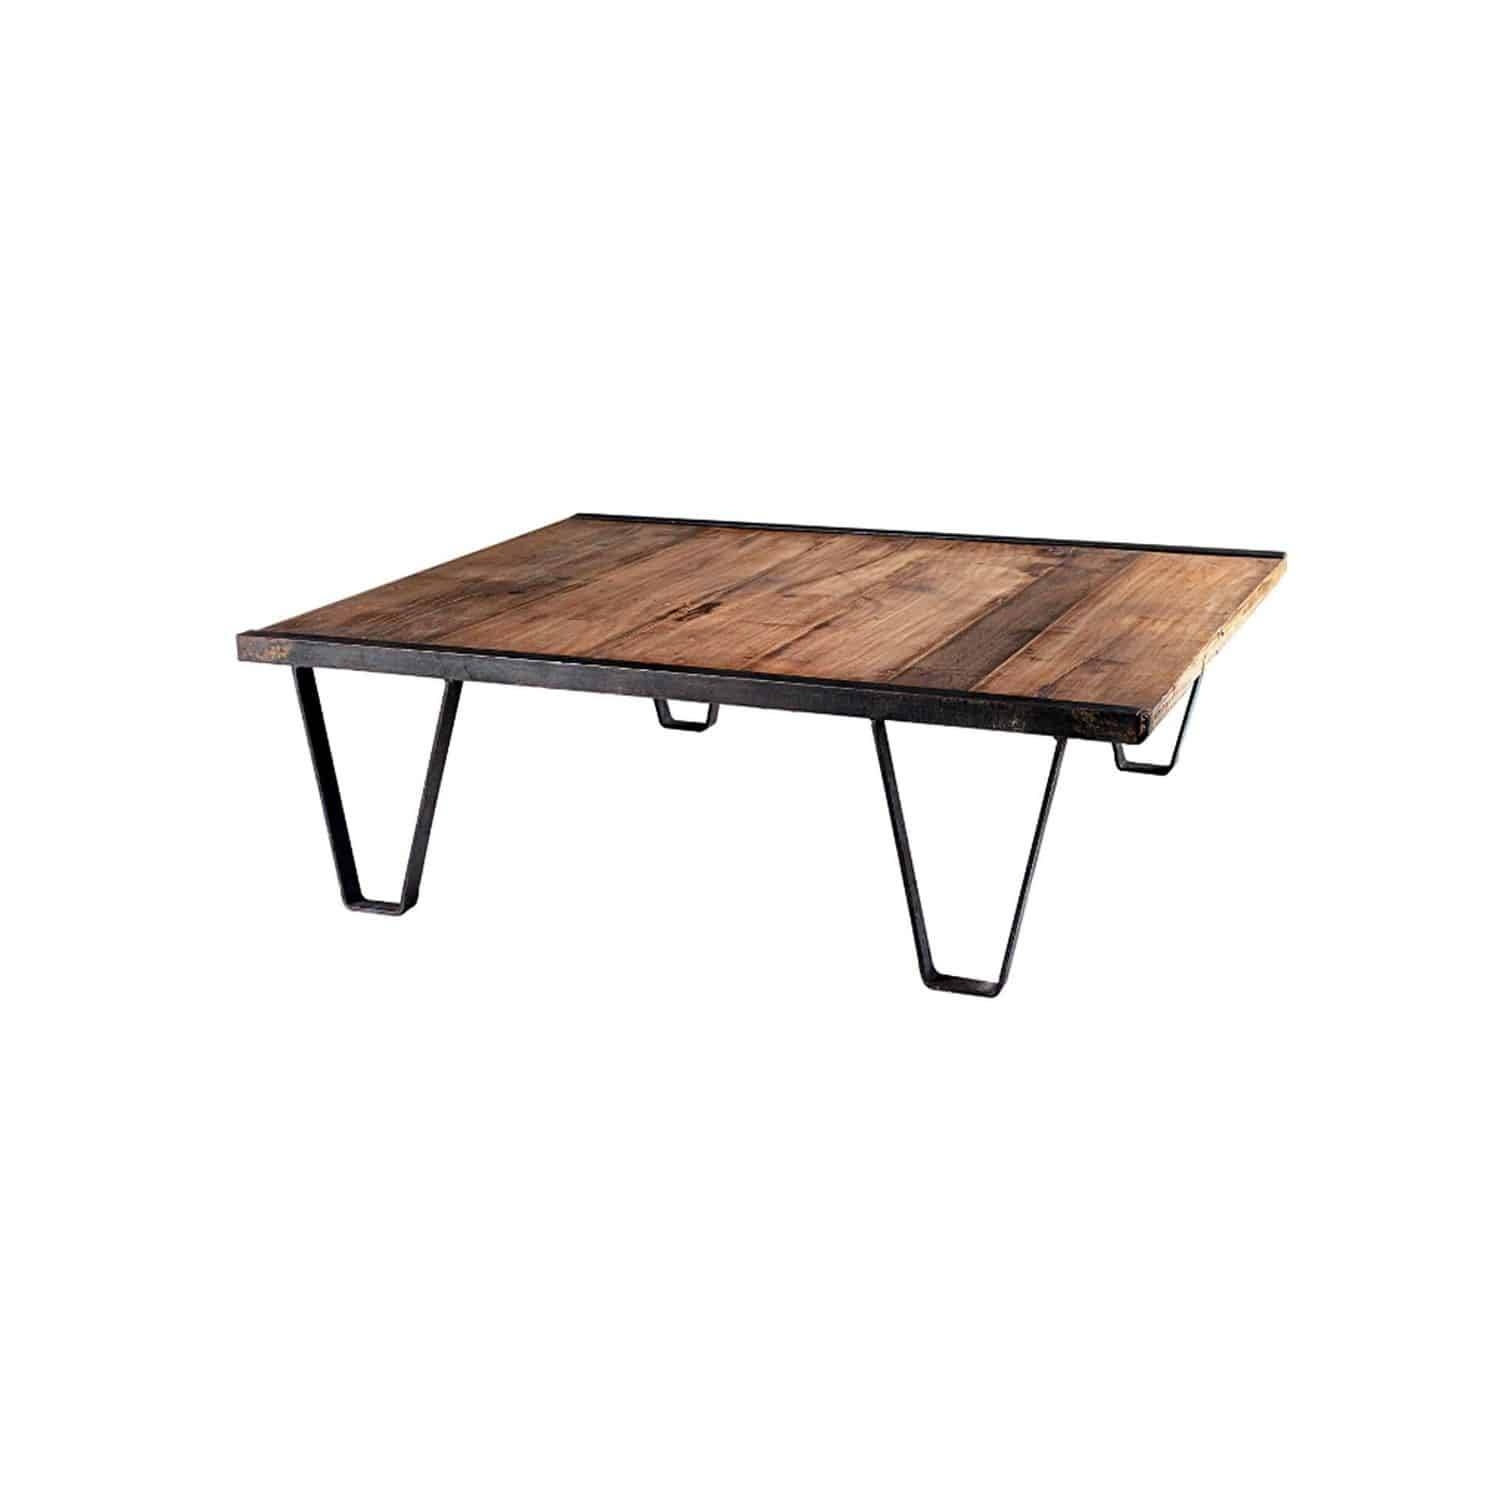 Industrial Style Coffee Table / Wooden / Metal / Rectangular pertaining to Coffee Table Industrial Style (Image 25 of 30)